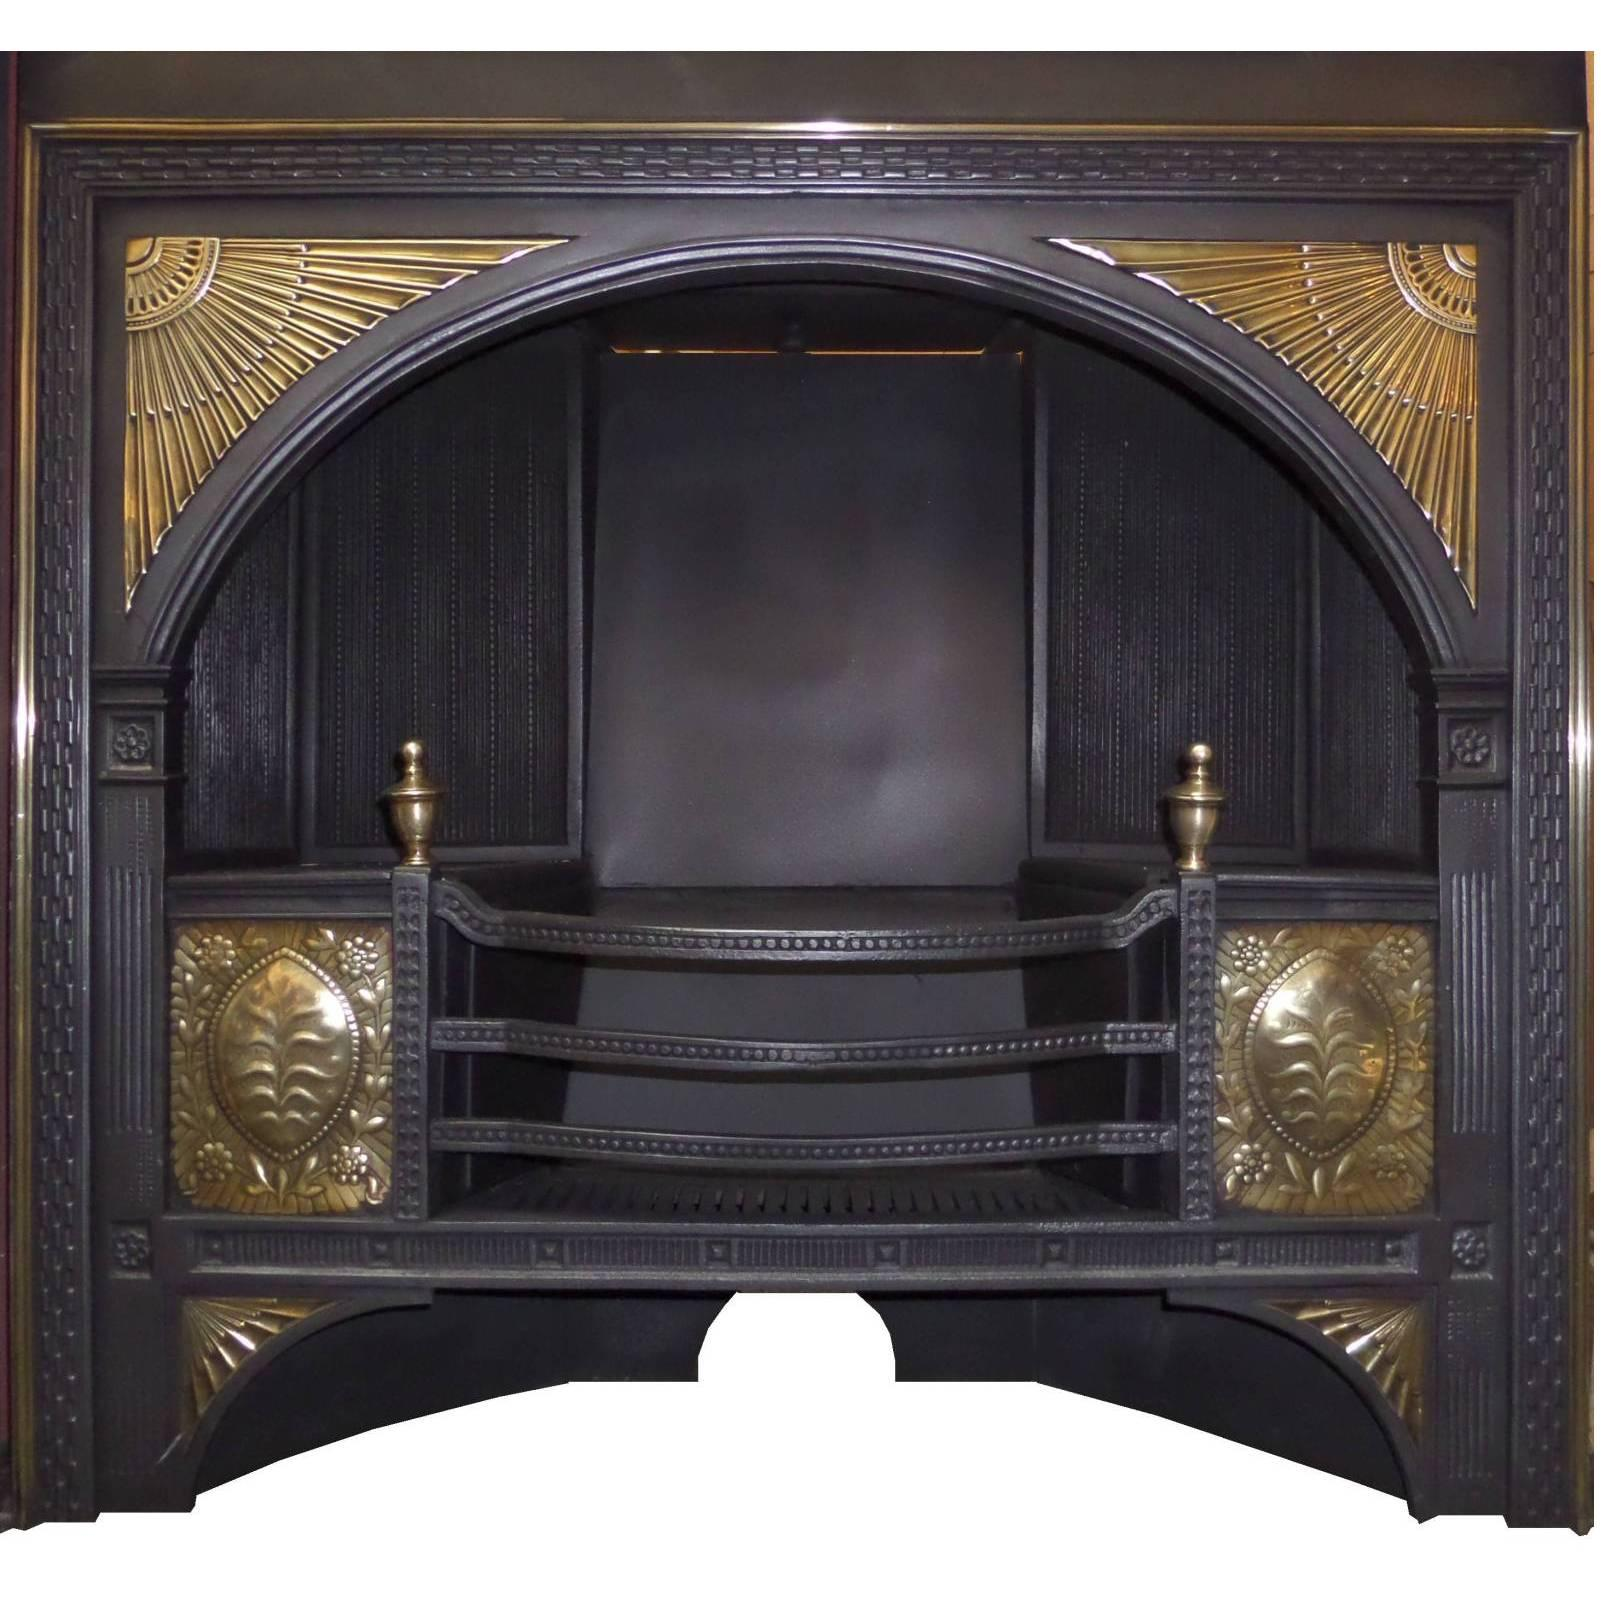 grate iron fireplace quot log cast open wood duty fire coal home furniture heavy furnishings basket